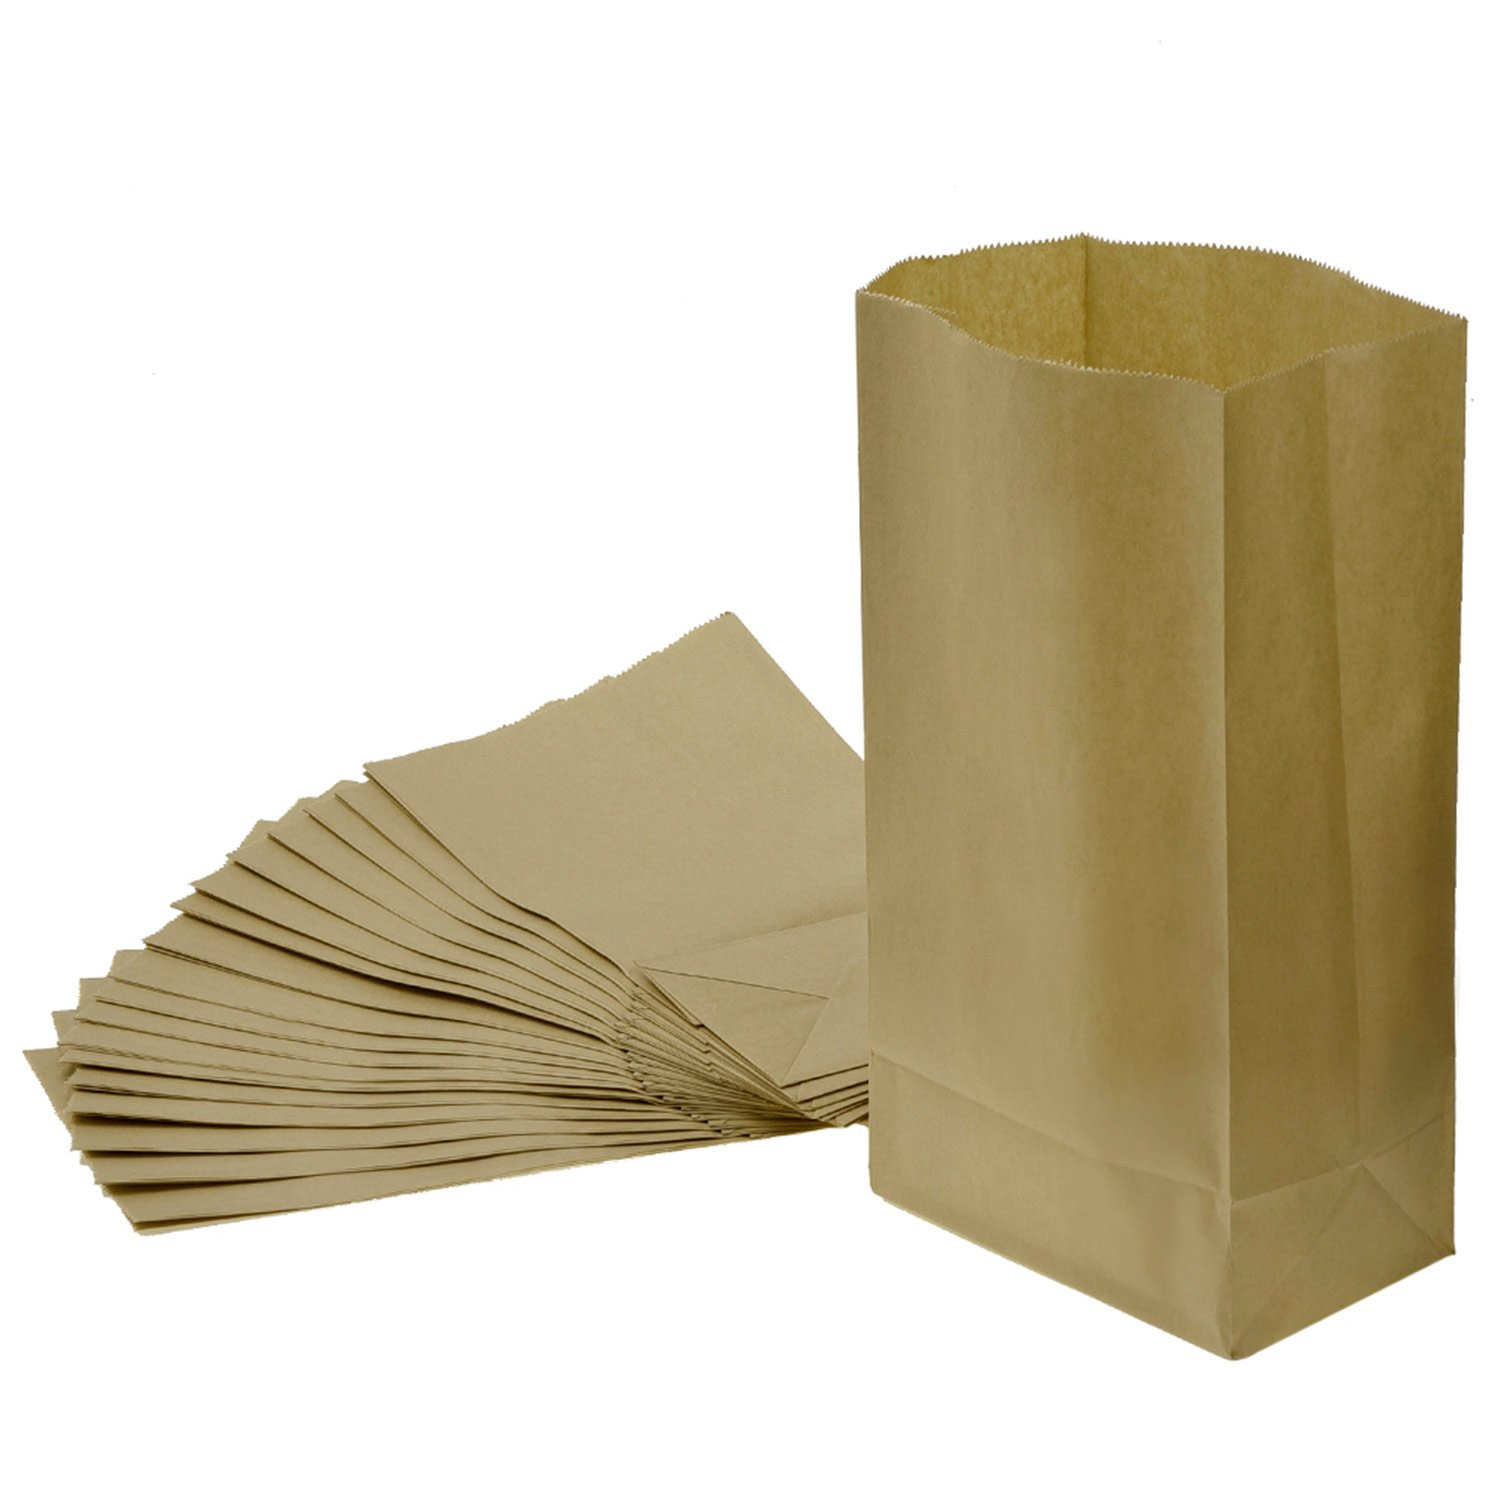 Grocery Bag Kraft Paper Bag Party Lunch Flat Bottom Paper Bag, 20 Count (S, Brown) eBoot